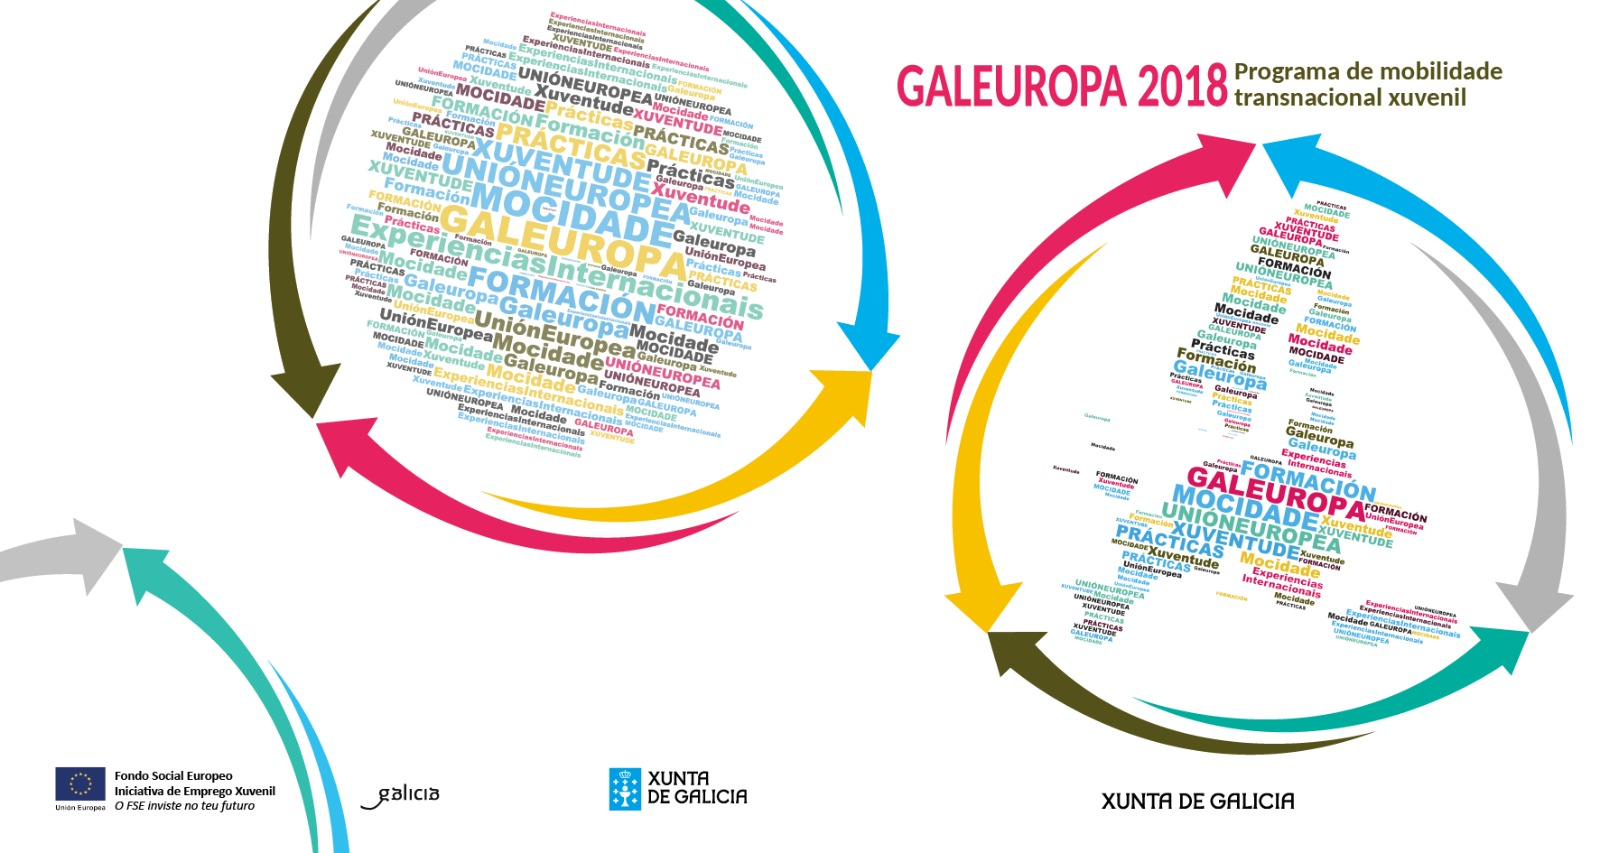 Folleto Galeuropa 2018 portada